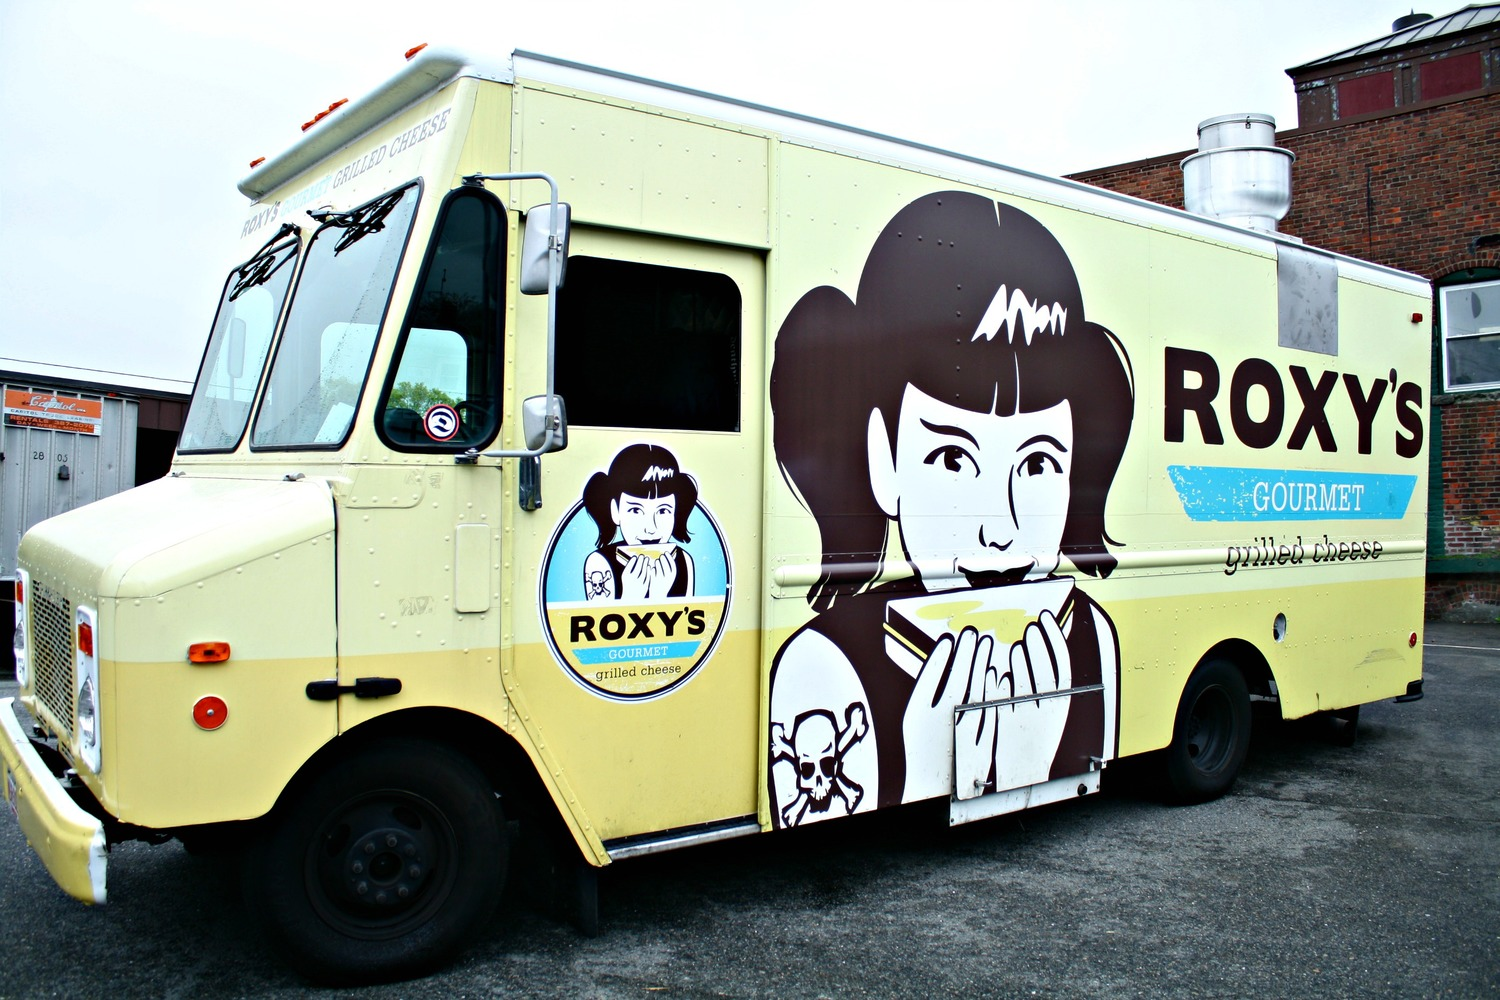 Roxys Grilled Cheese